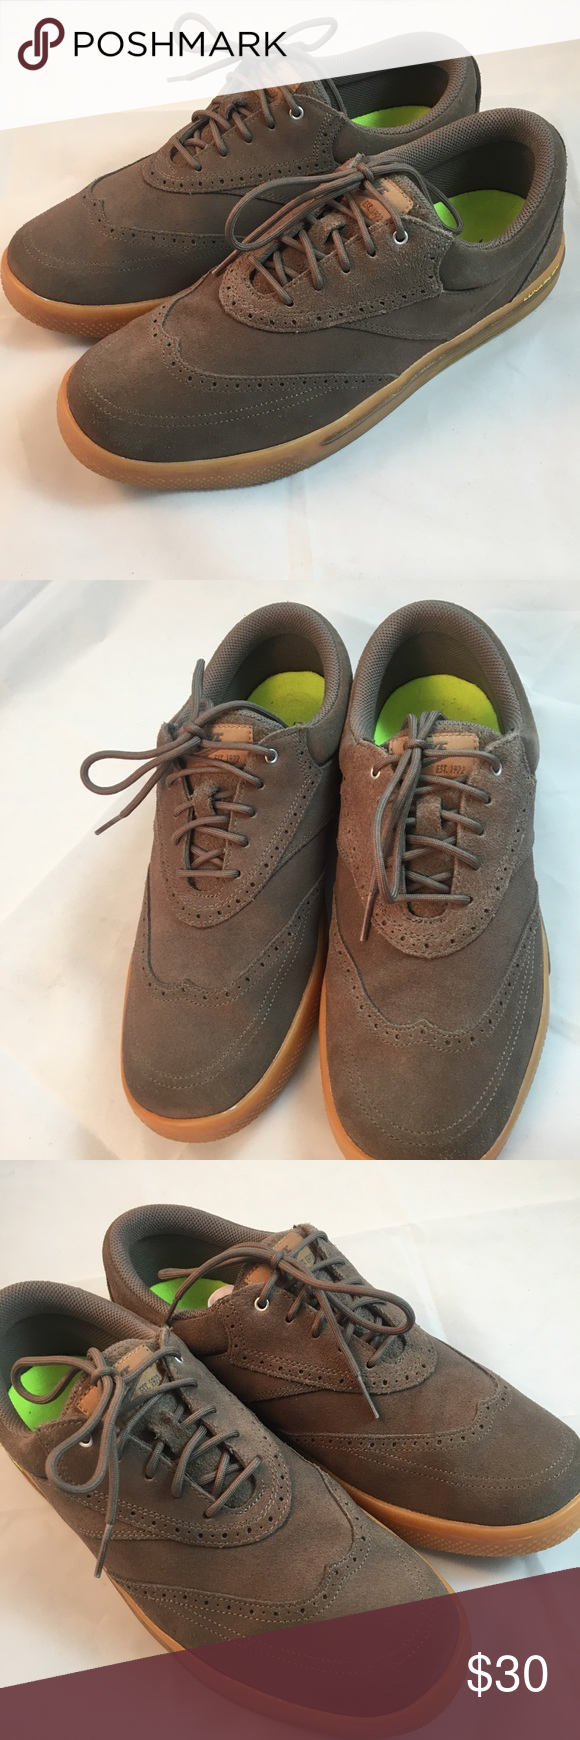 173d75699e85f Nike Lunar Swingtip Suede SD Mens Golf Shoes Great used condition 9W ...